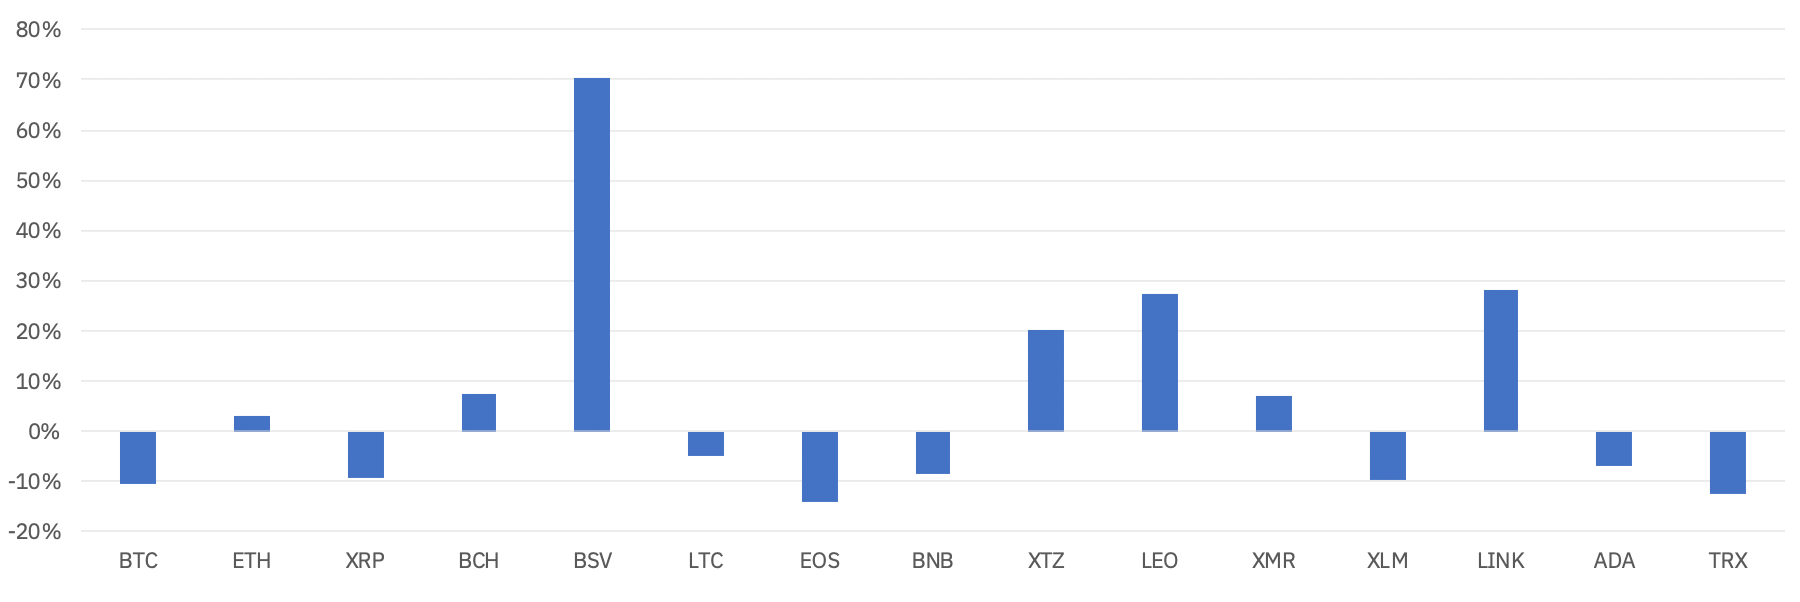 Altcoins returns in Q1 2020